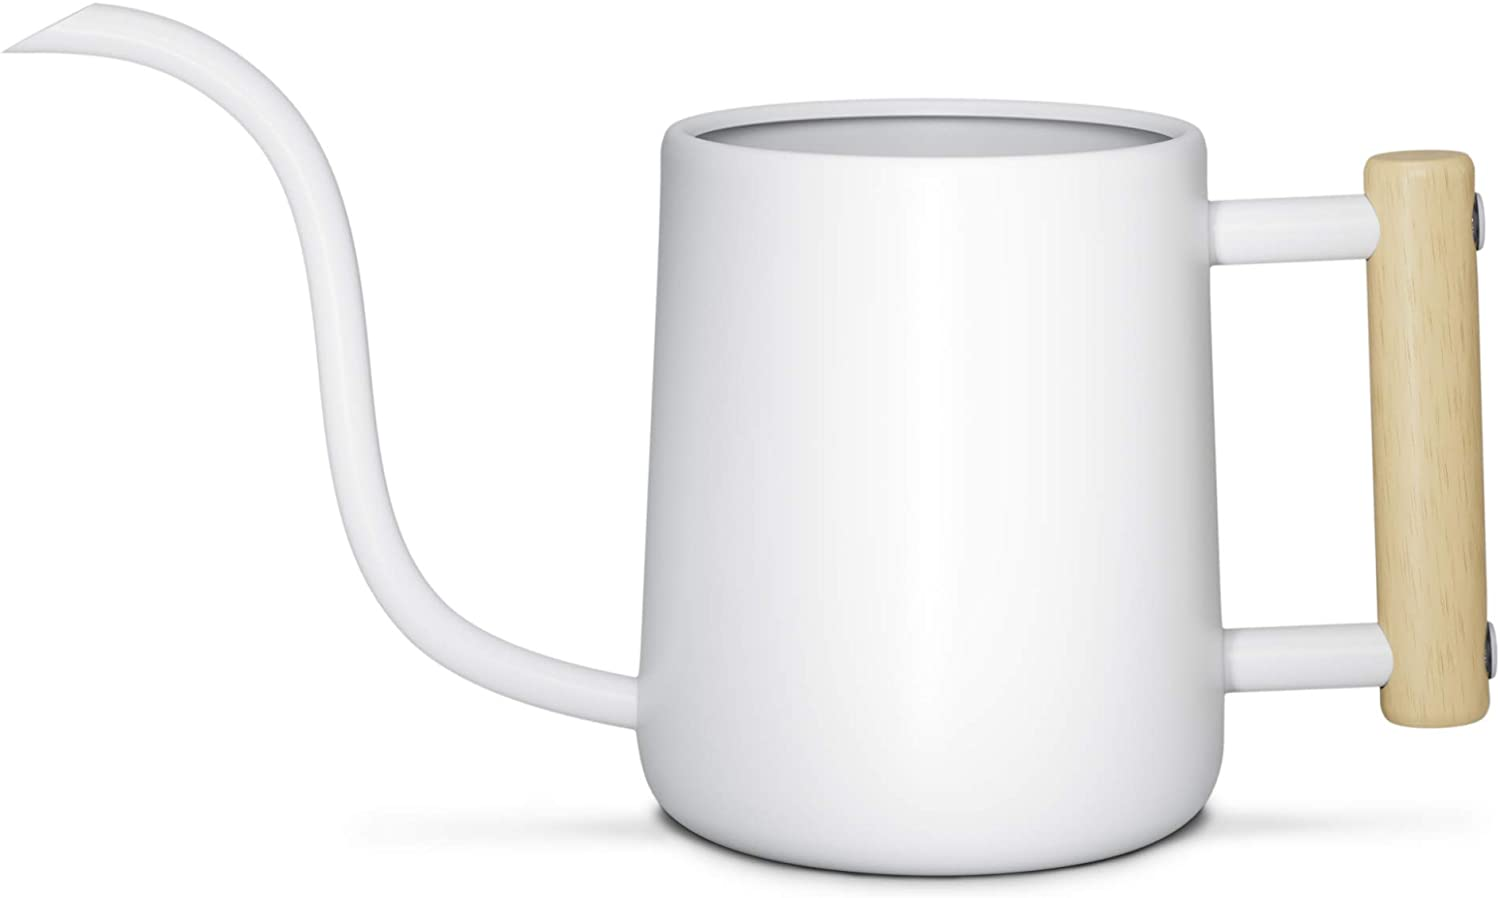 Indoor Watering Can with Long Spout - 35oz White Watering Can for Indoor Plants - Cute Watering Can Indoor - Small Watering Can for Indoor Plants - Indoor Plant Watering Can - Houseplant Watering Can